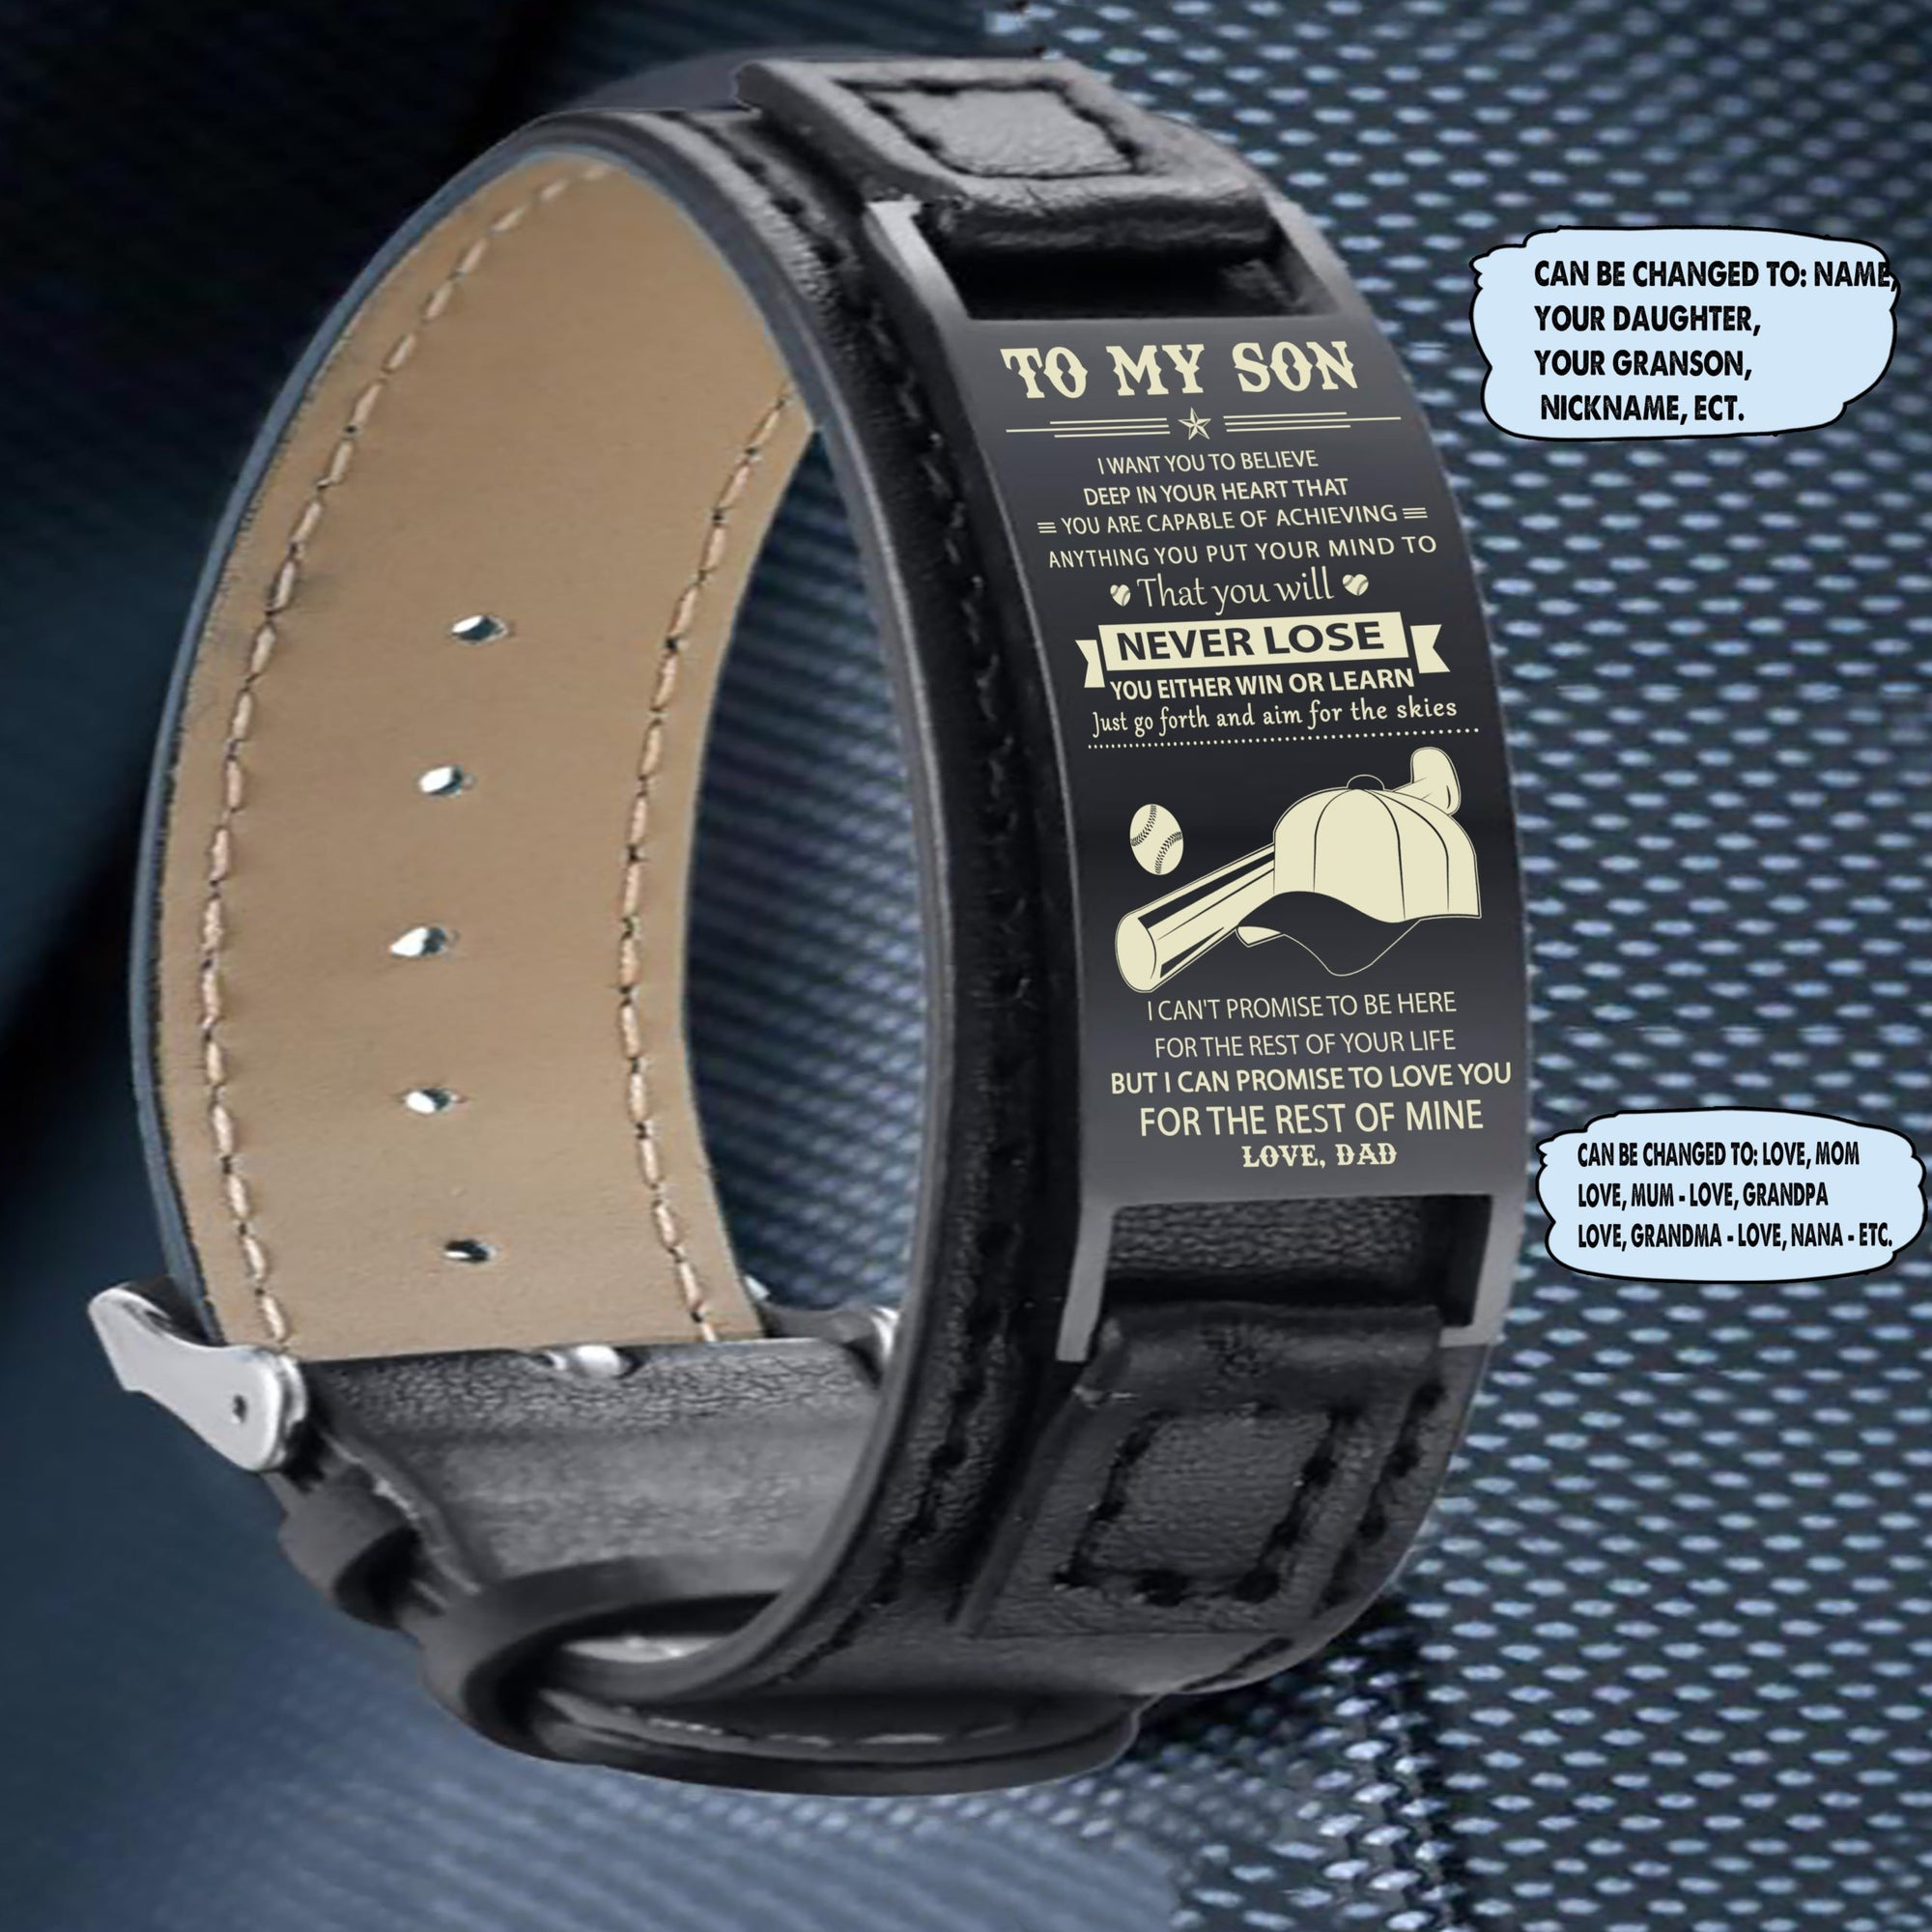 (LP125) Baseball Black Engraved Leather Steel Bracelets- Dad to son- never lose. FREE SHIPPING FROM 2 ITEMS